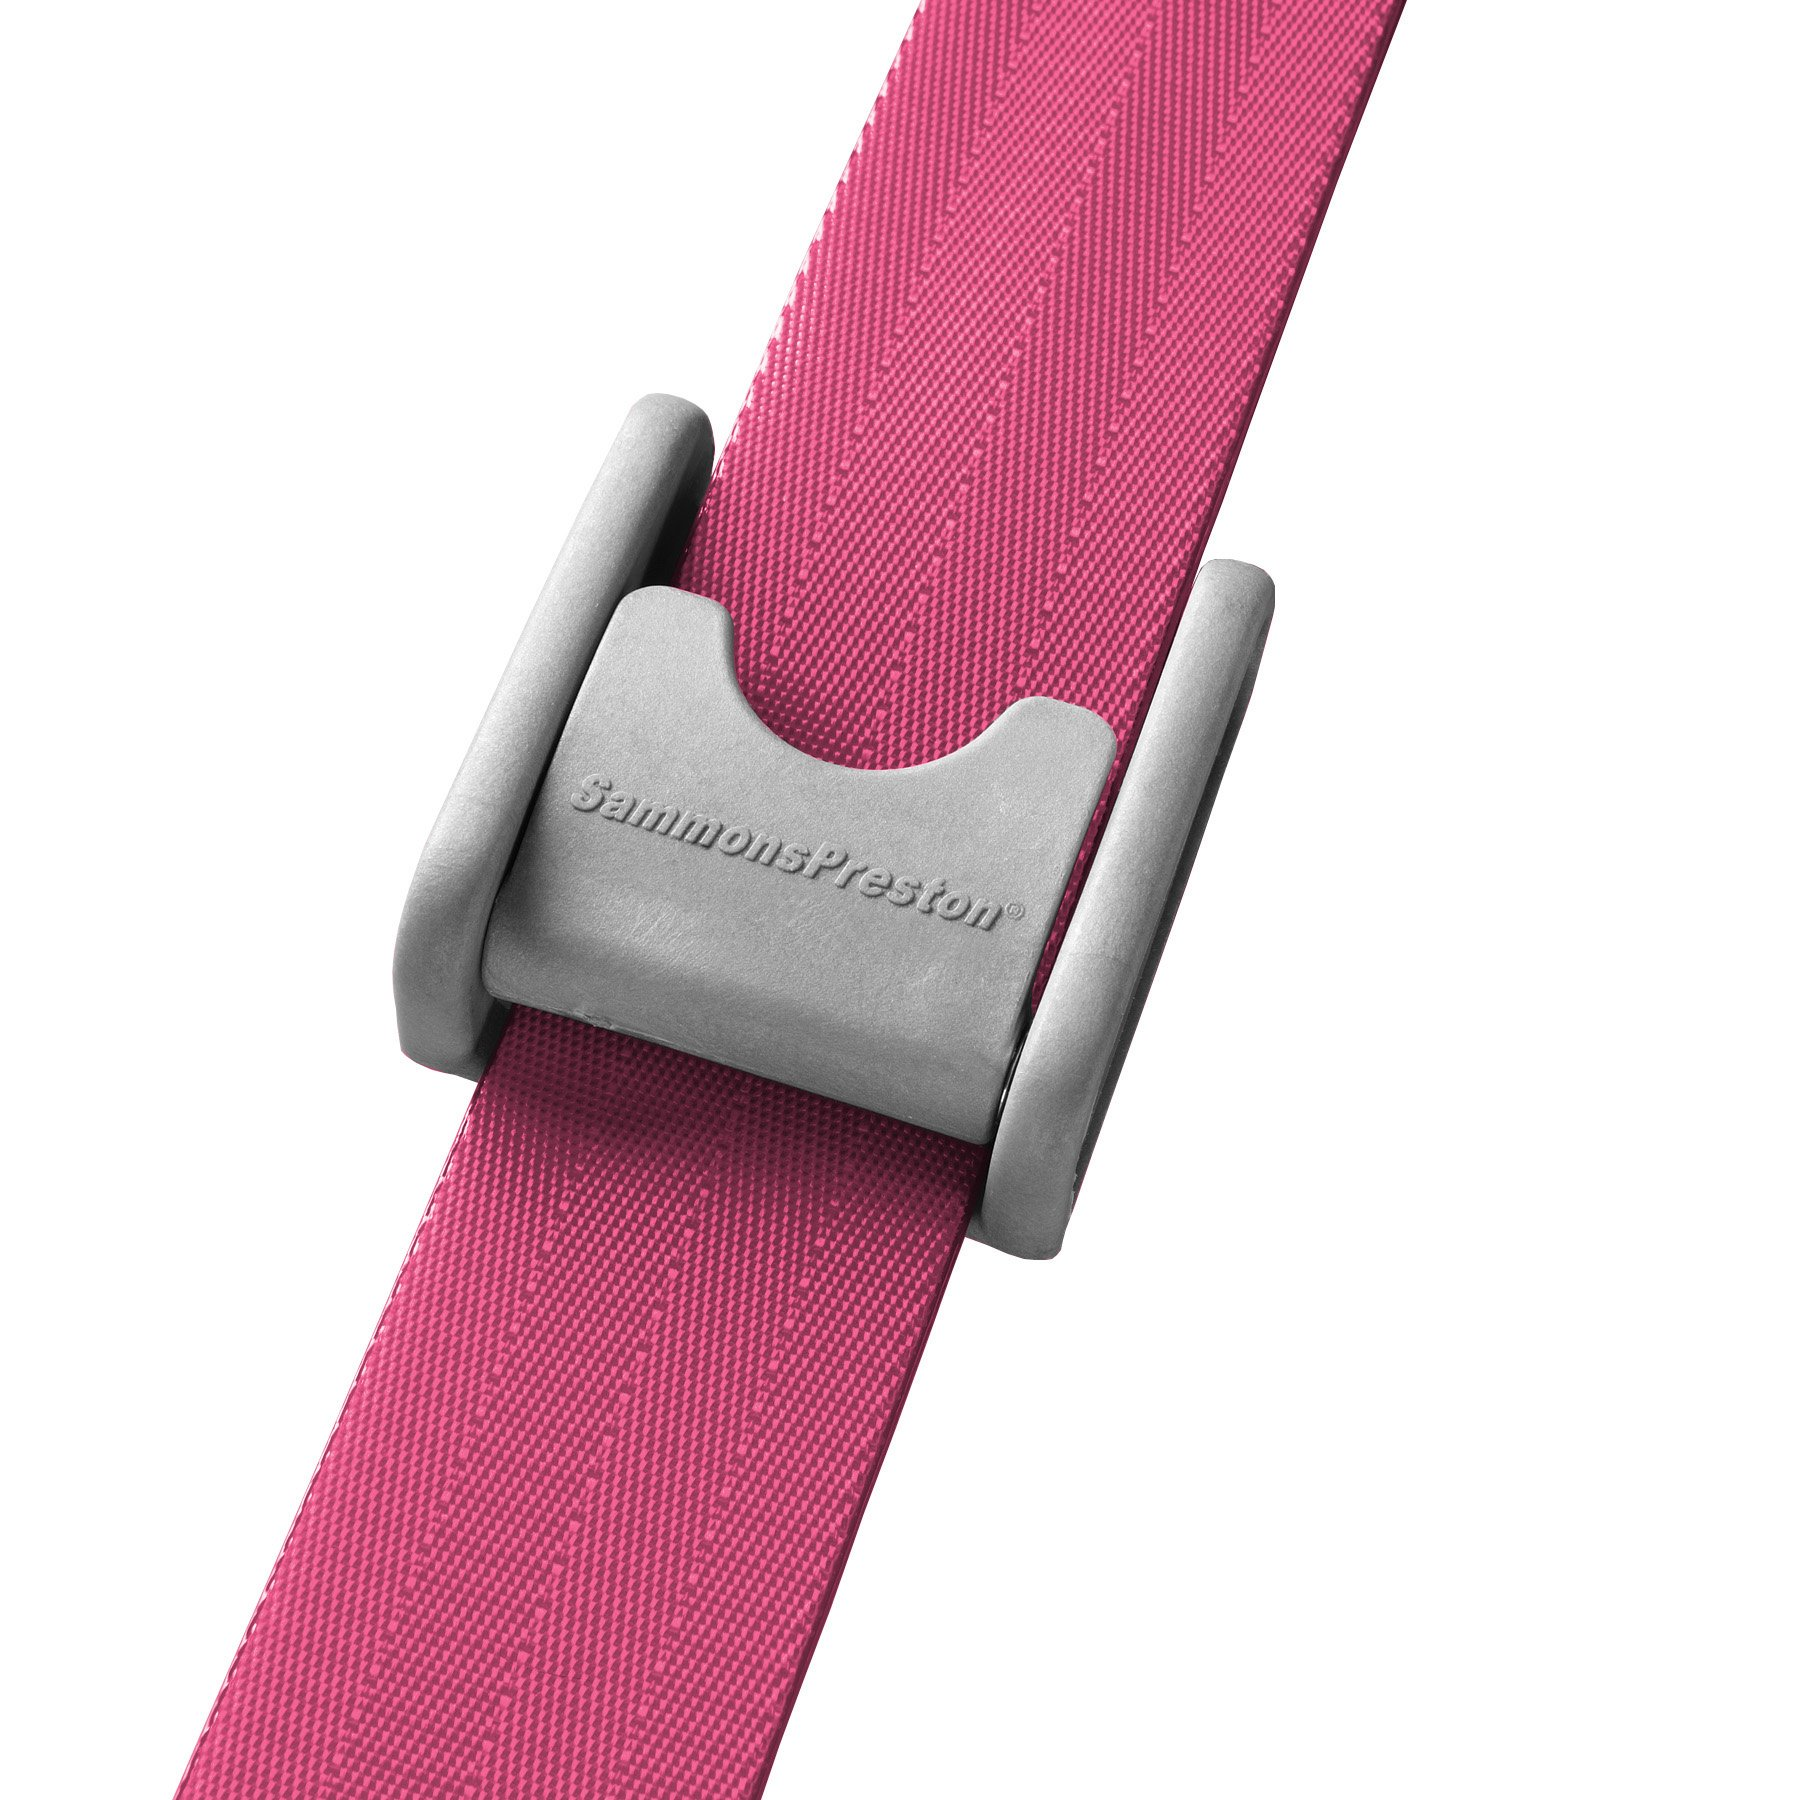 Sammons Preston Quick Clean Gait Belt, 60'' Long, Pink, Polyethylene Buckle, Secure Mobility Transfer Assist Device for Patient Transport To Bed, Chair, Car, Caregiver & Nurse Medical Safety Aid